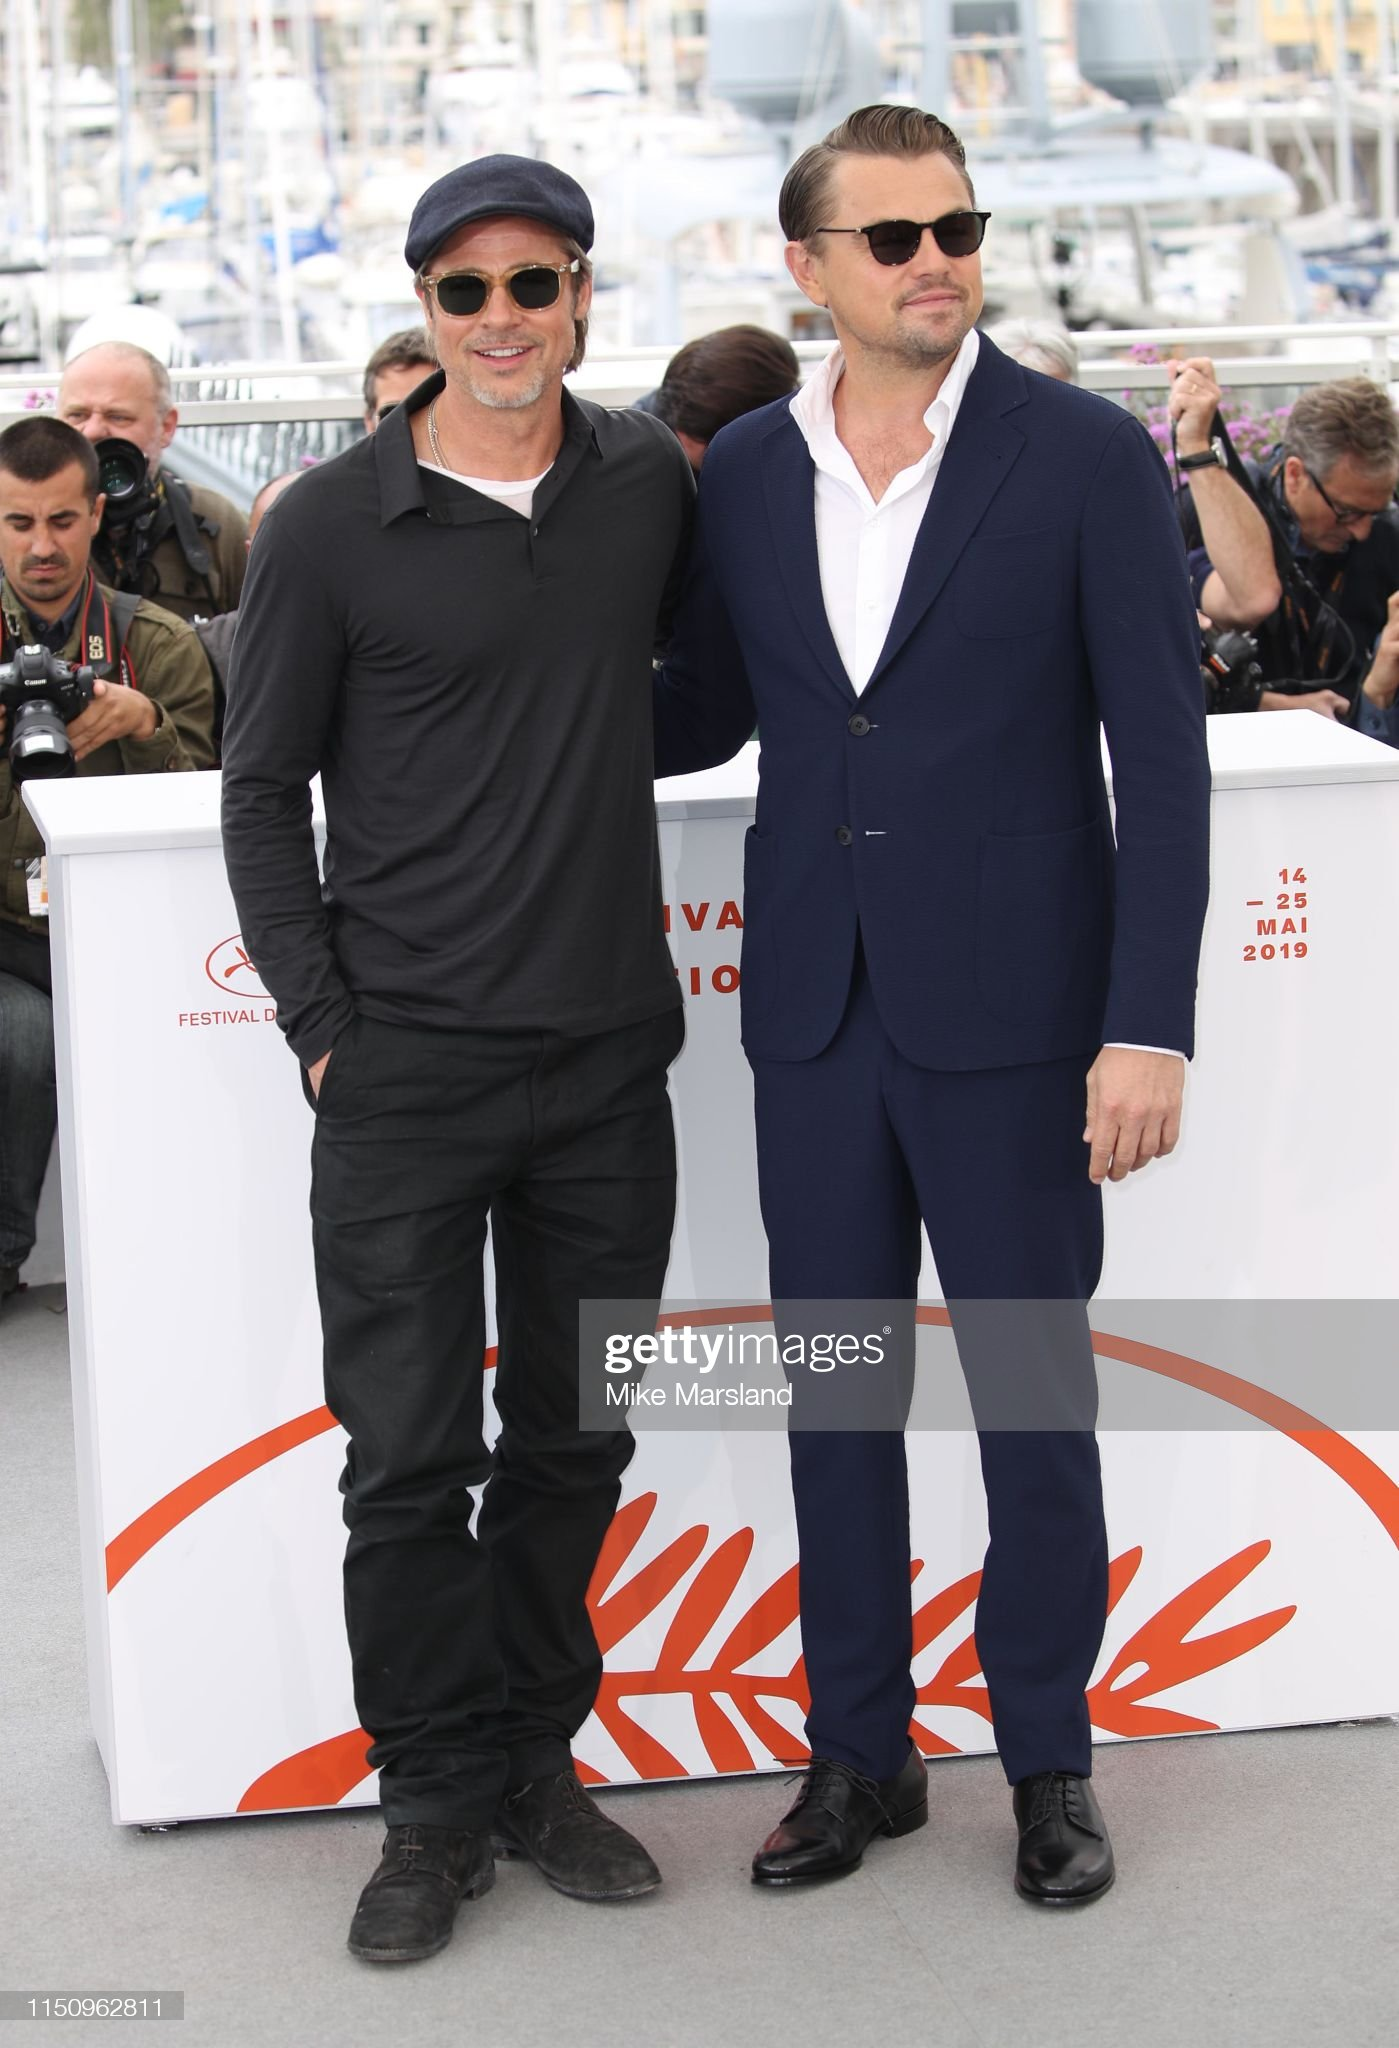 ¿Cuánto mide Brad Pitt? - Altura - Real height - Página 3 Brad-pitt-and-leonardo-dicaprio-attend-thephotocall-for-once-upon-a-picture-id1150962811?s=2048x2048